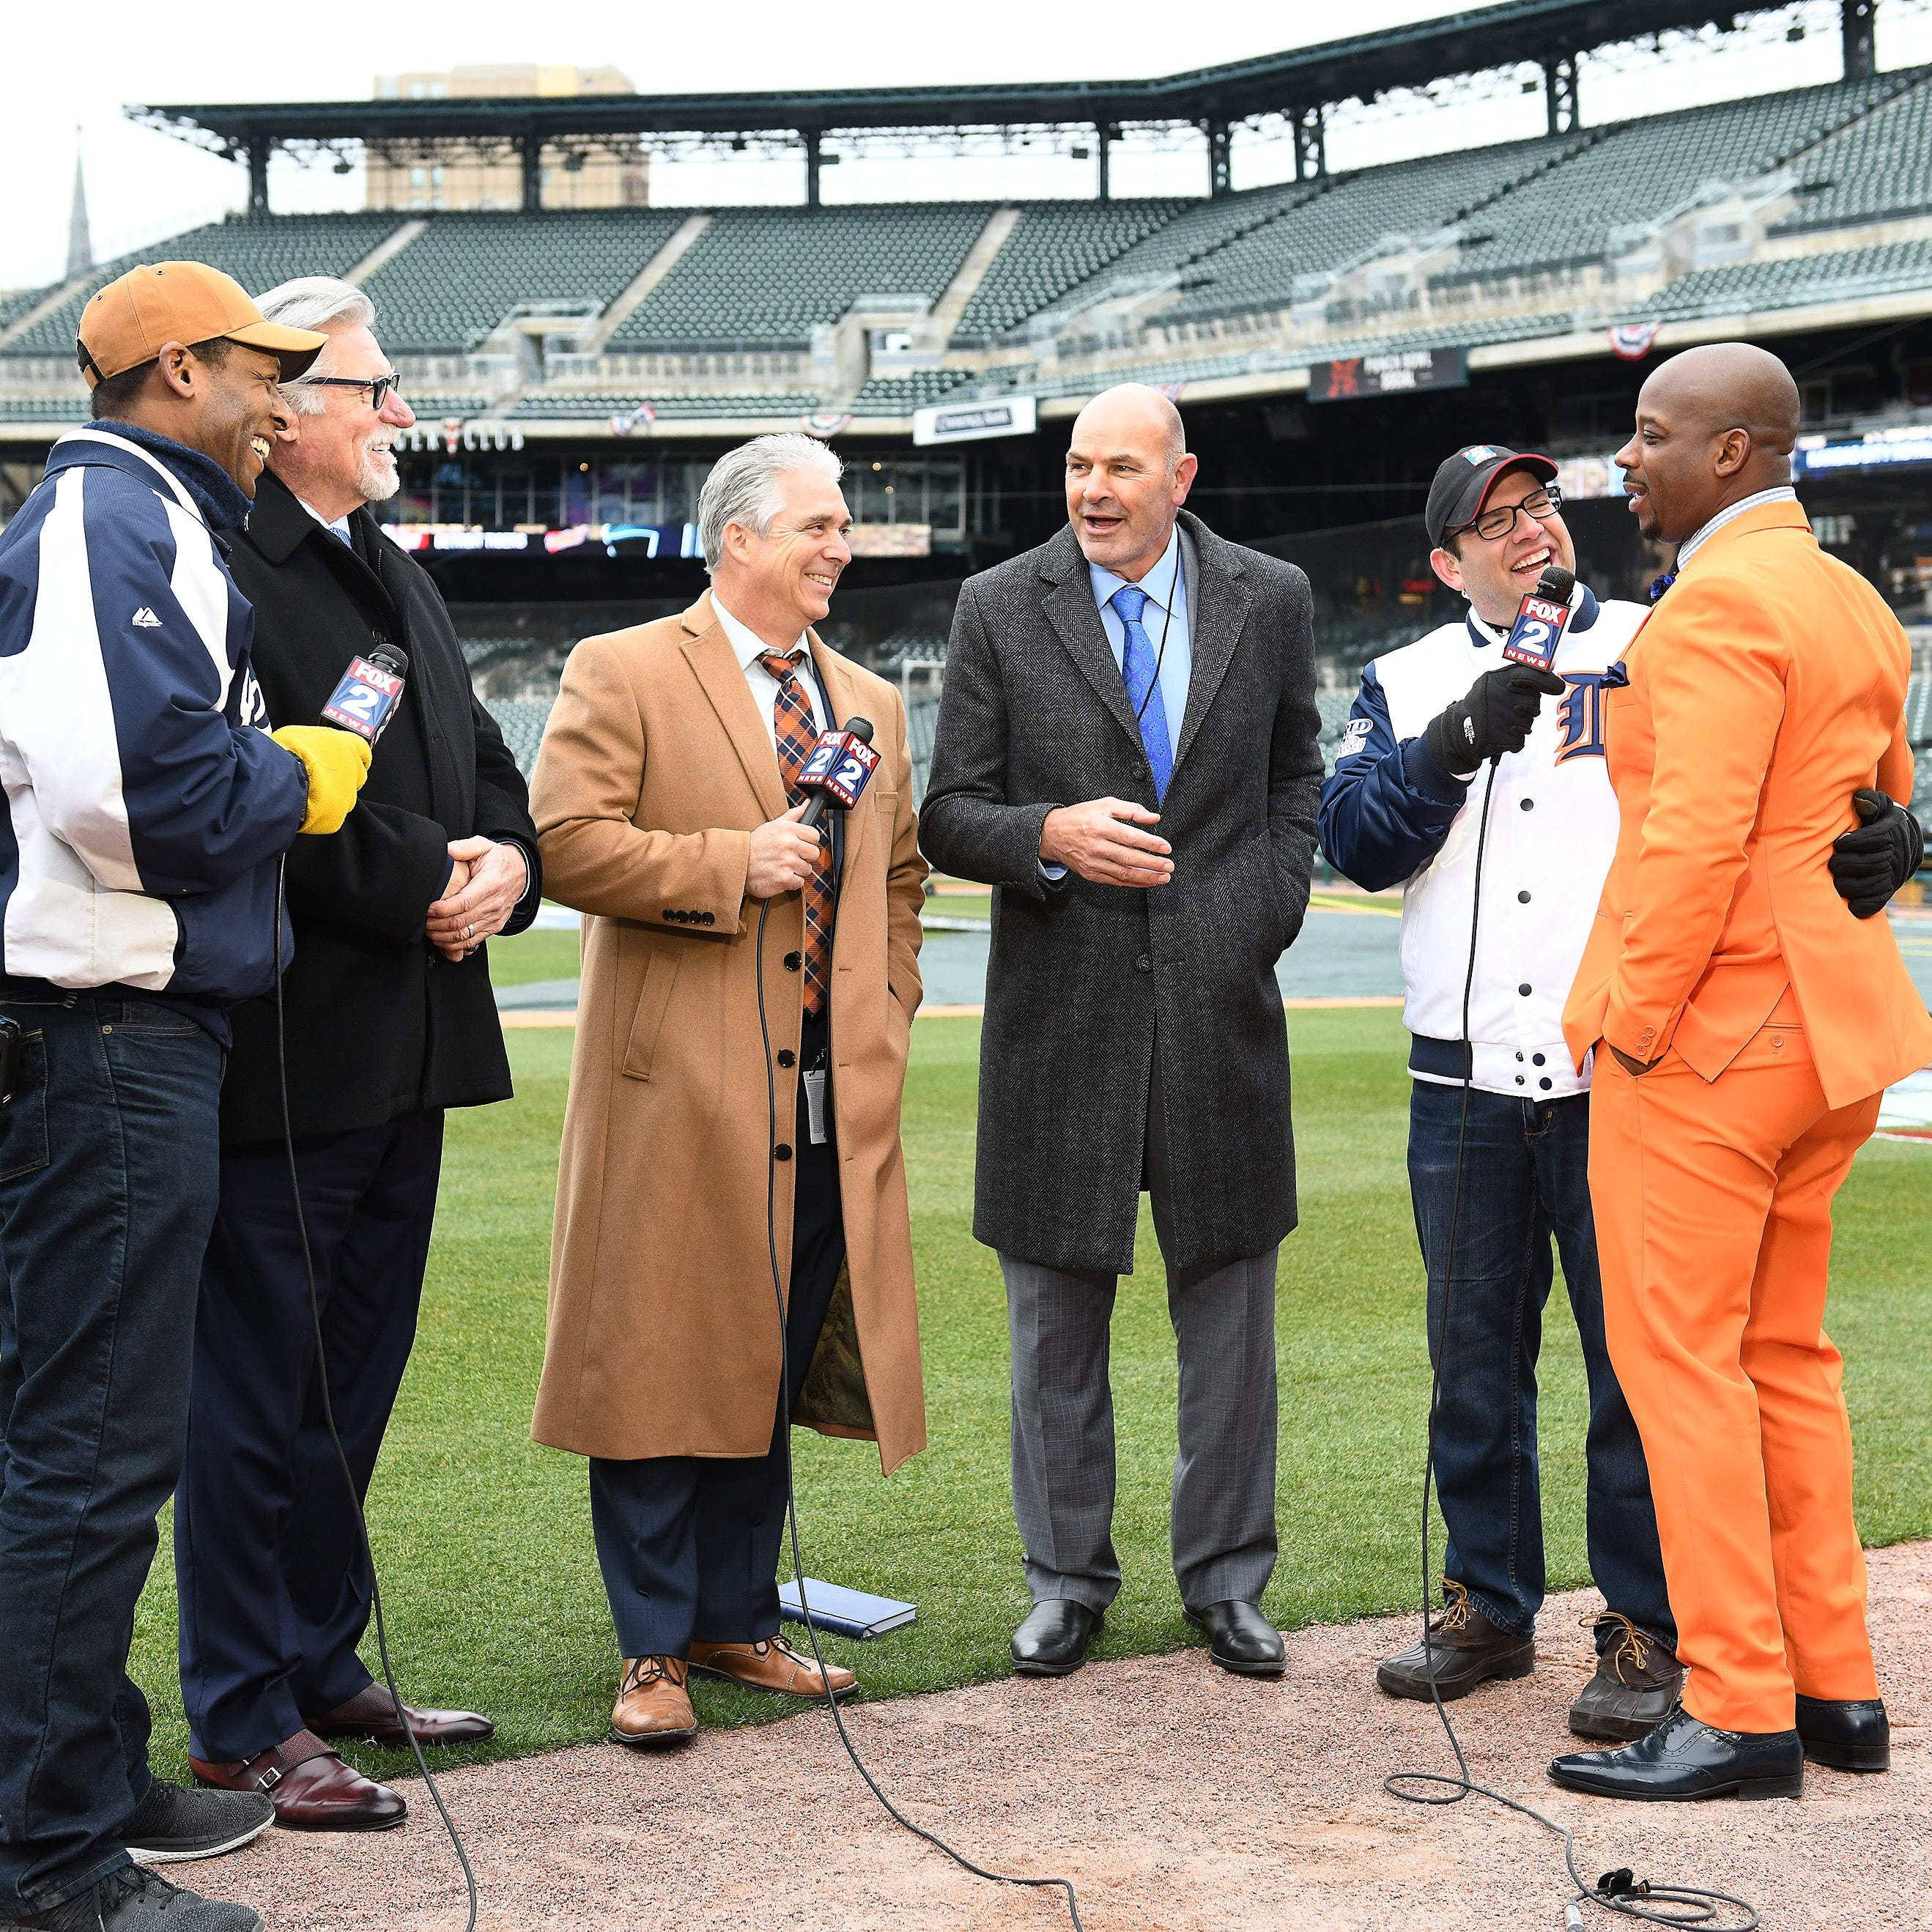 FSD re-evaluating its 'players-only' broadcasts for Tigers games